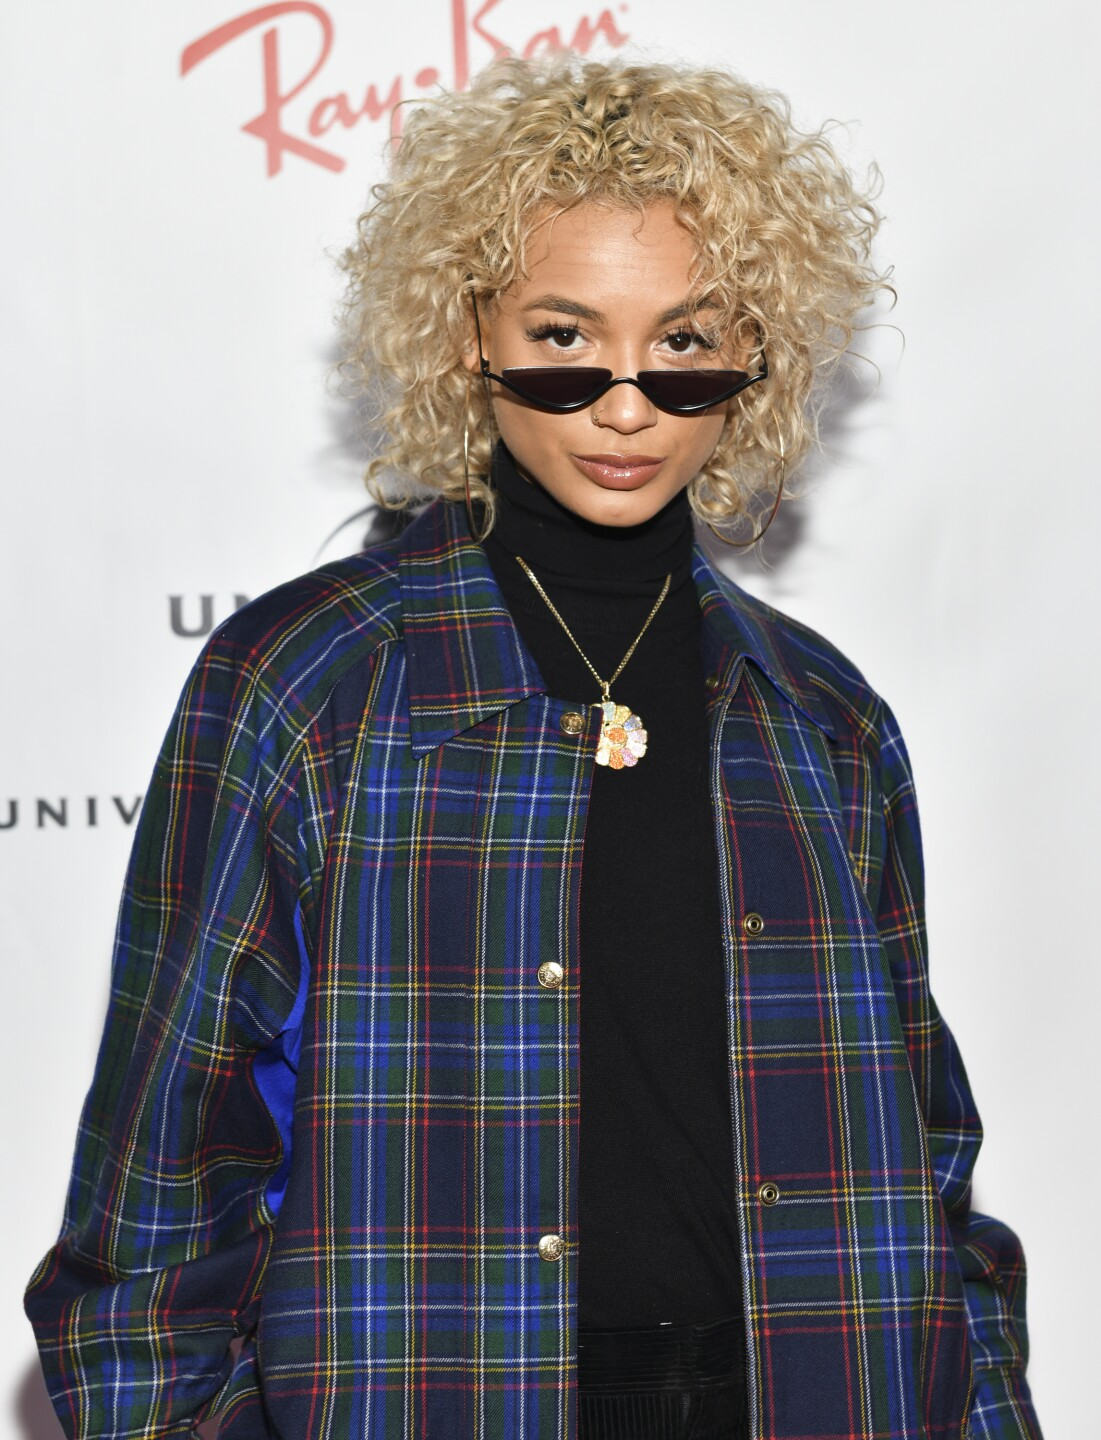 DaniLeigh at the GRAMMYs.